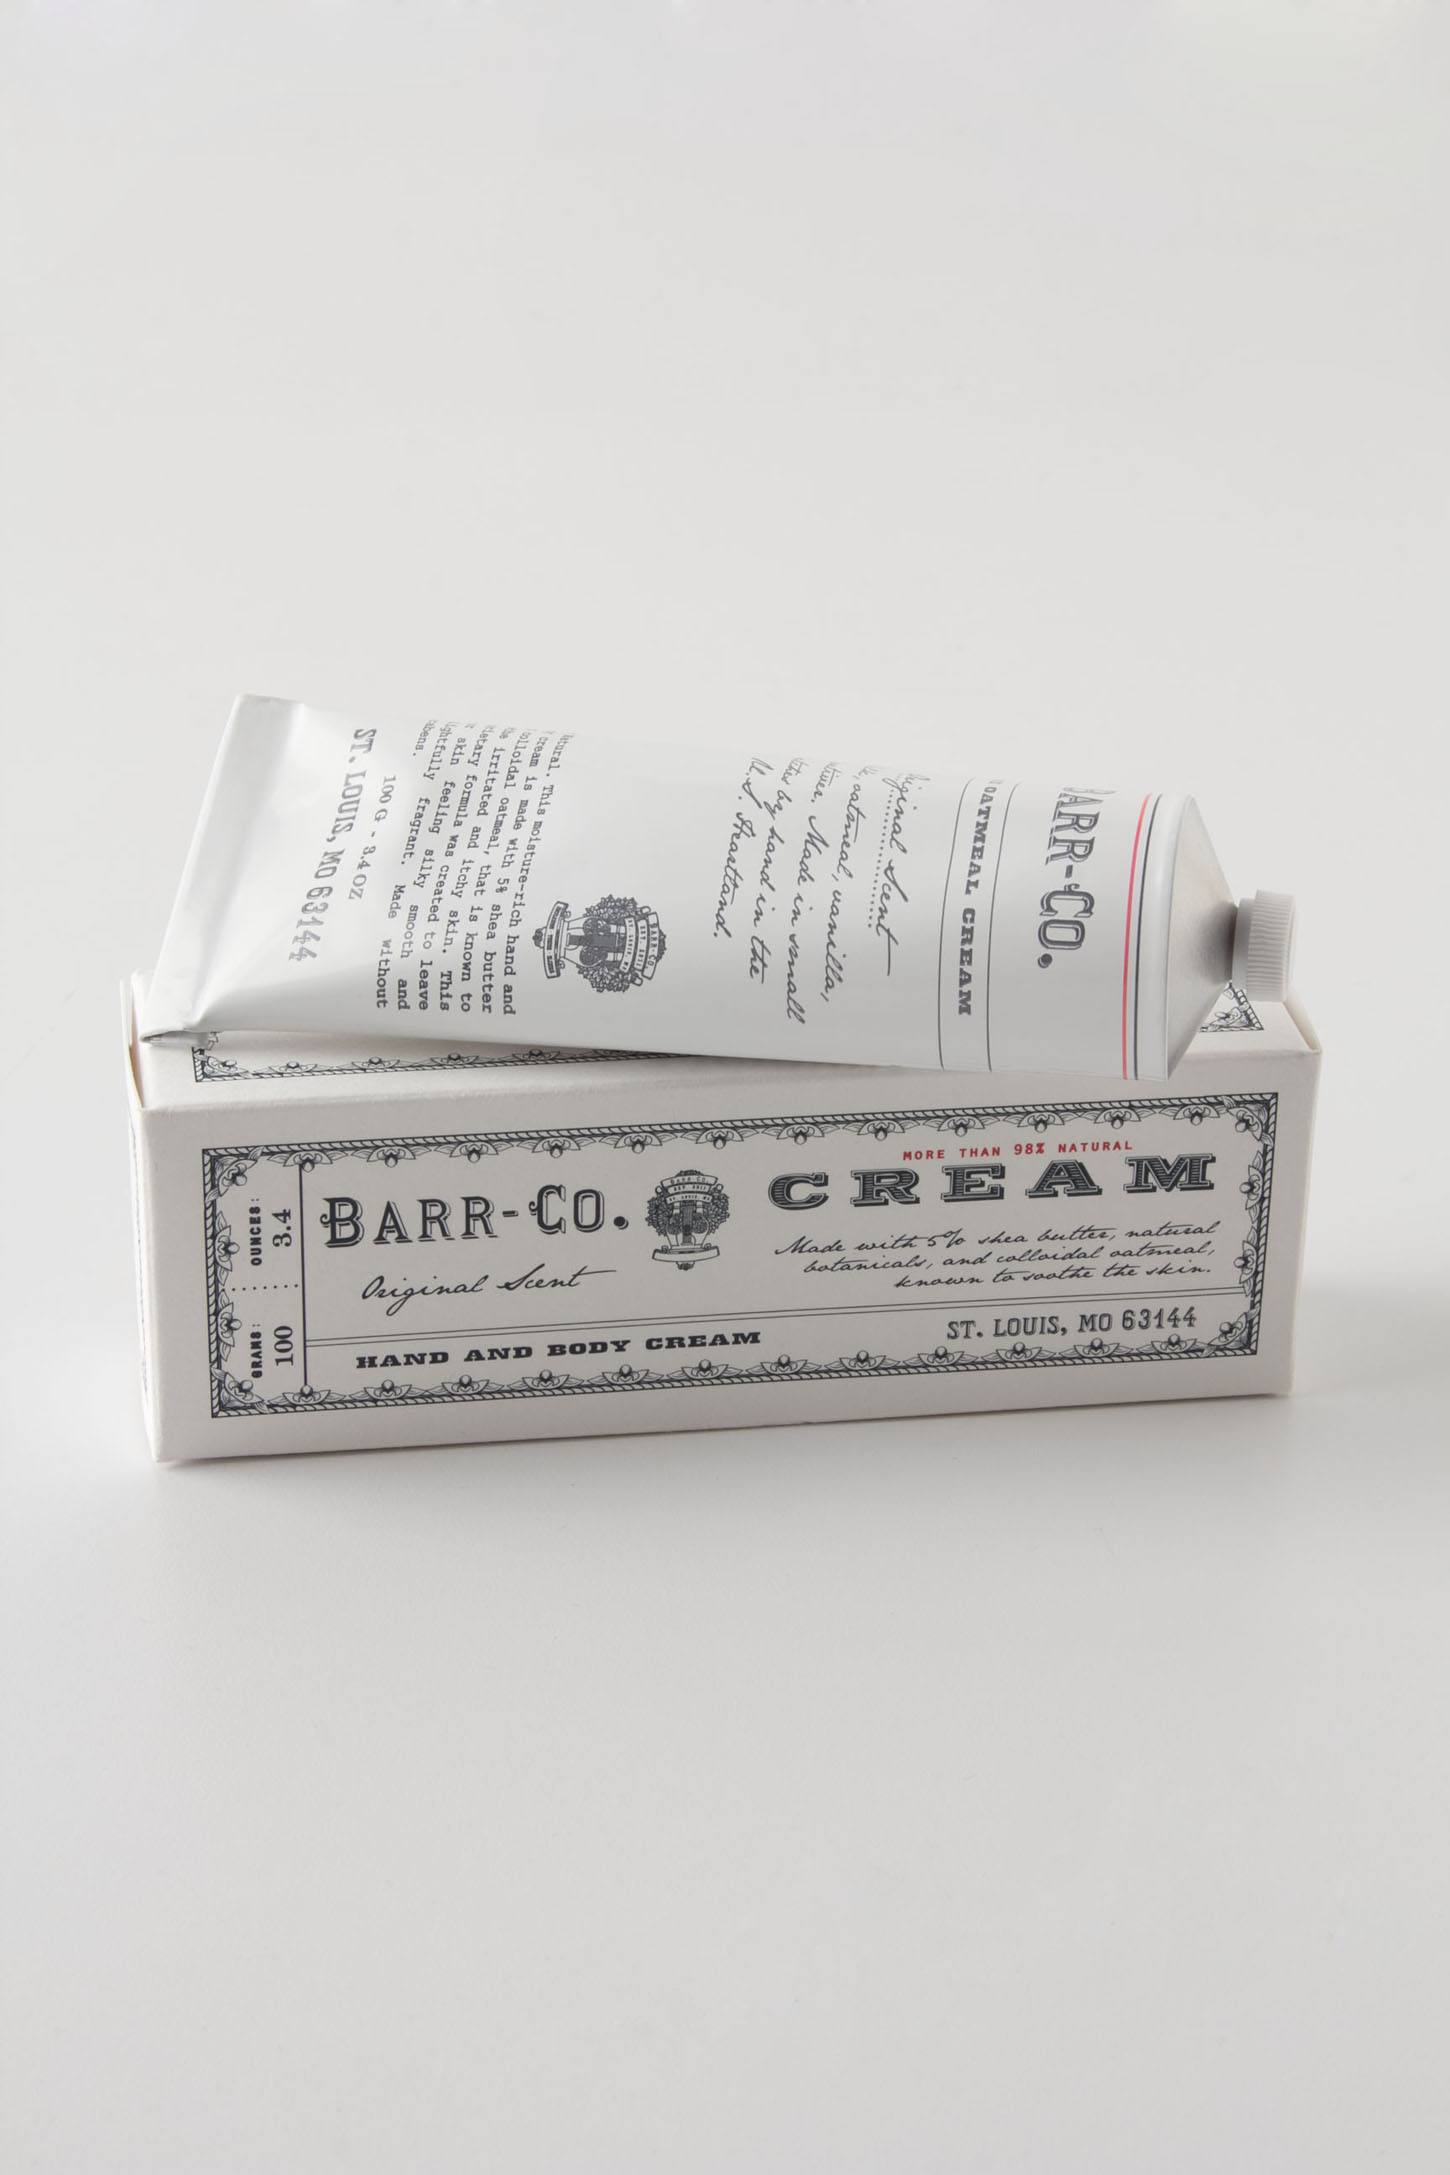 Barr-Co. Hand Cream